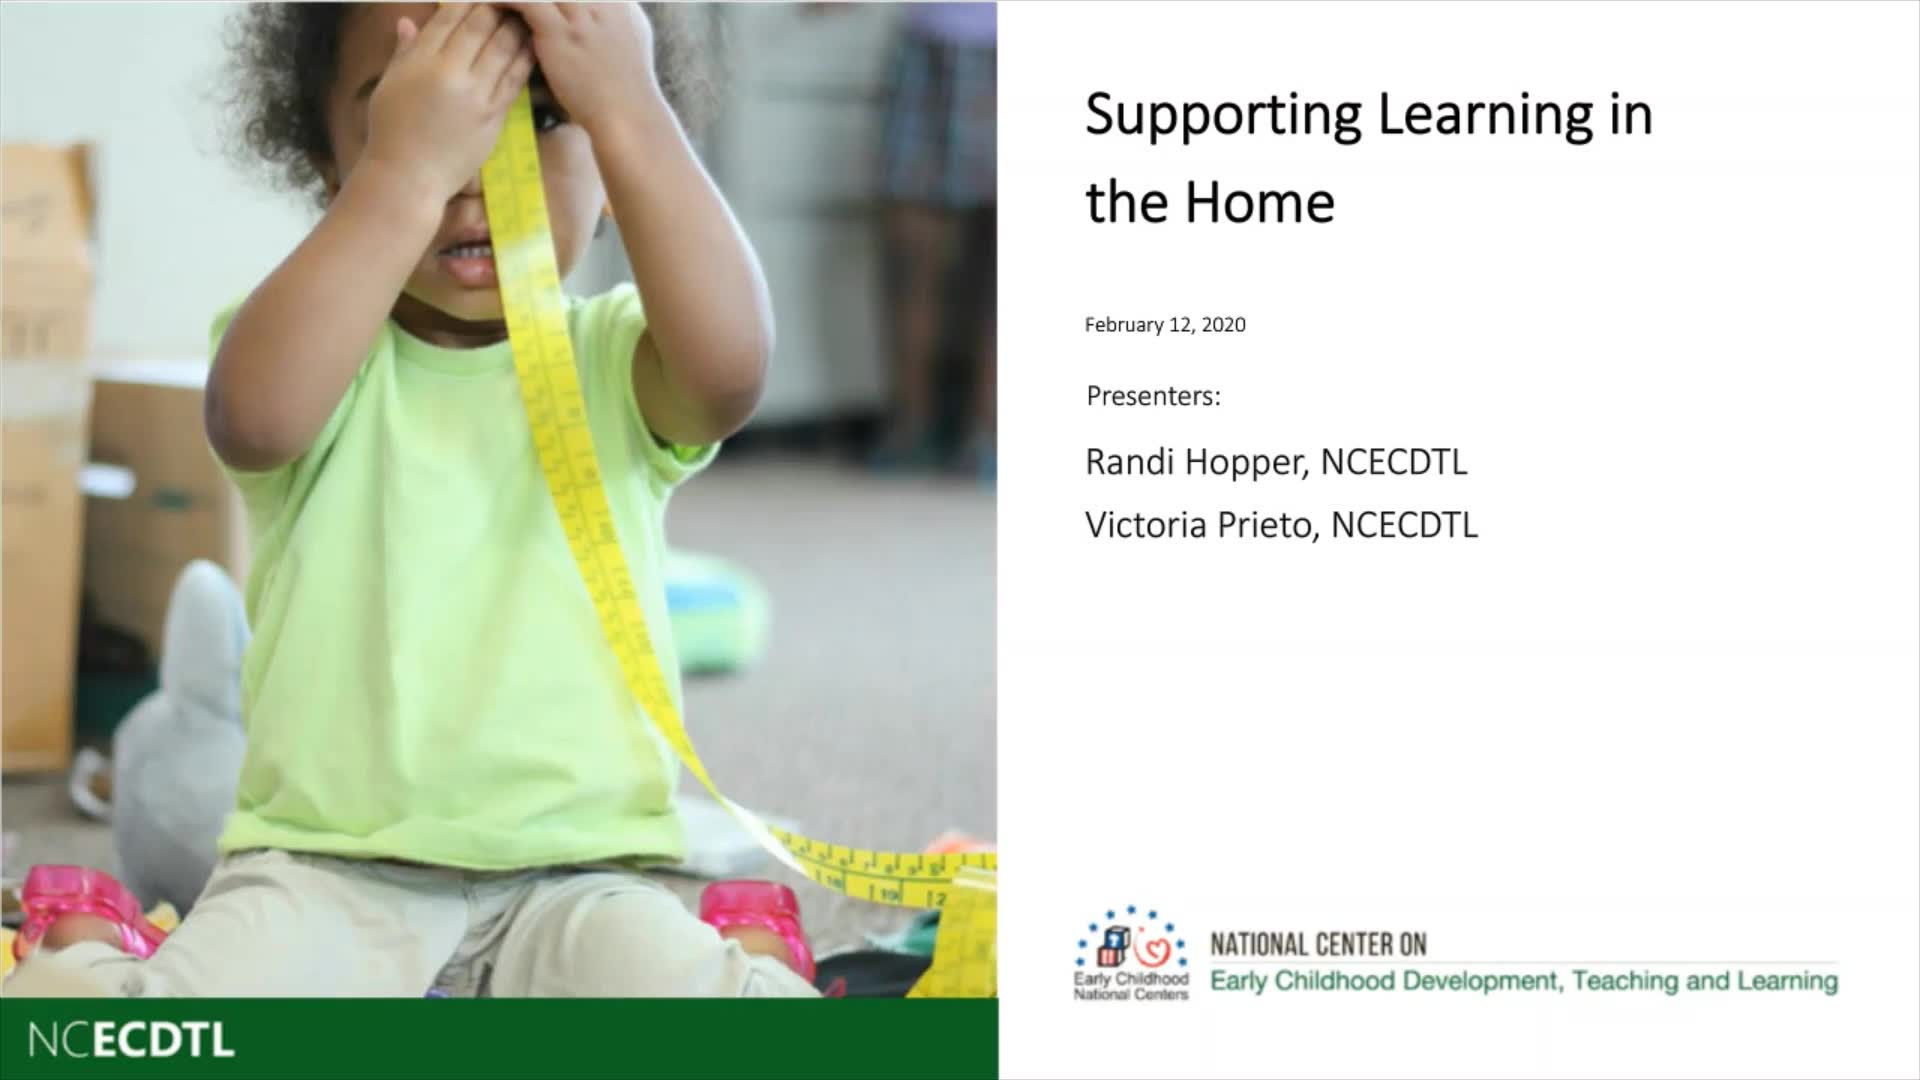 Supporting Learning in the Home